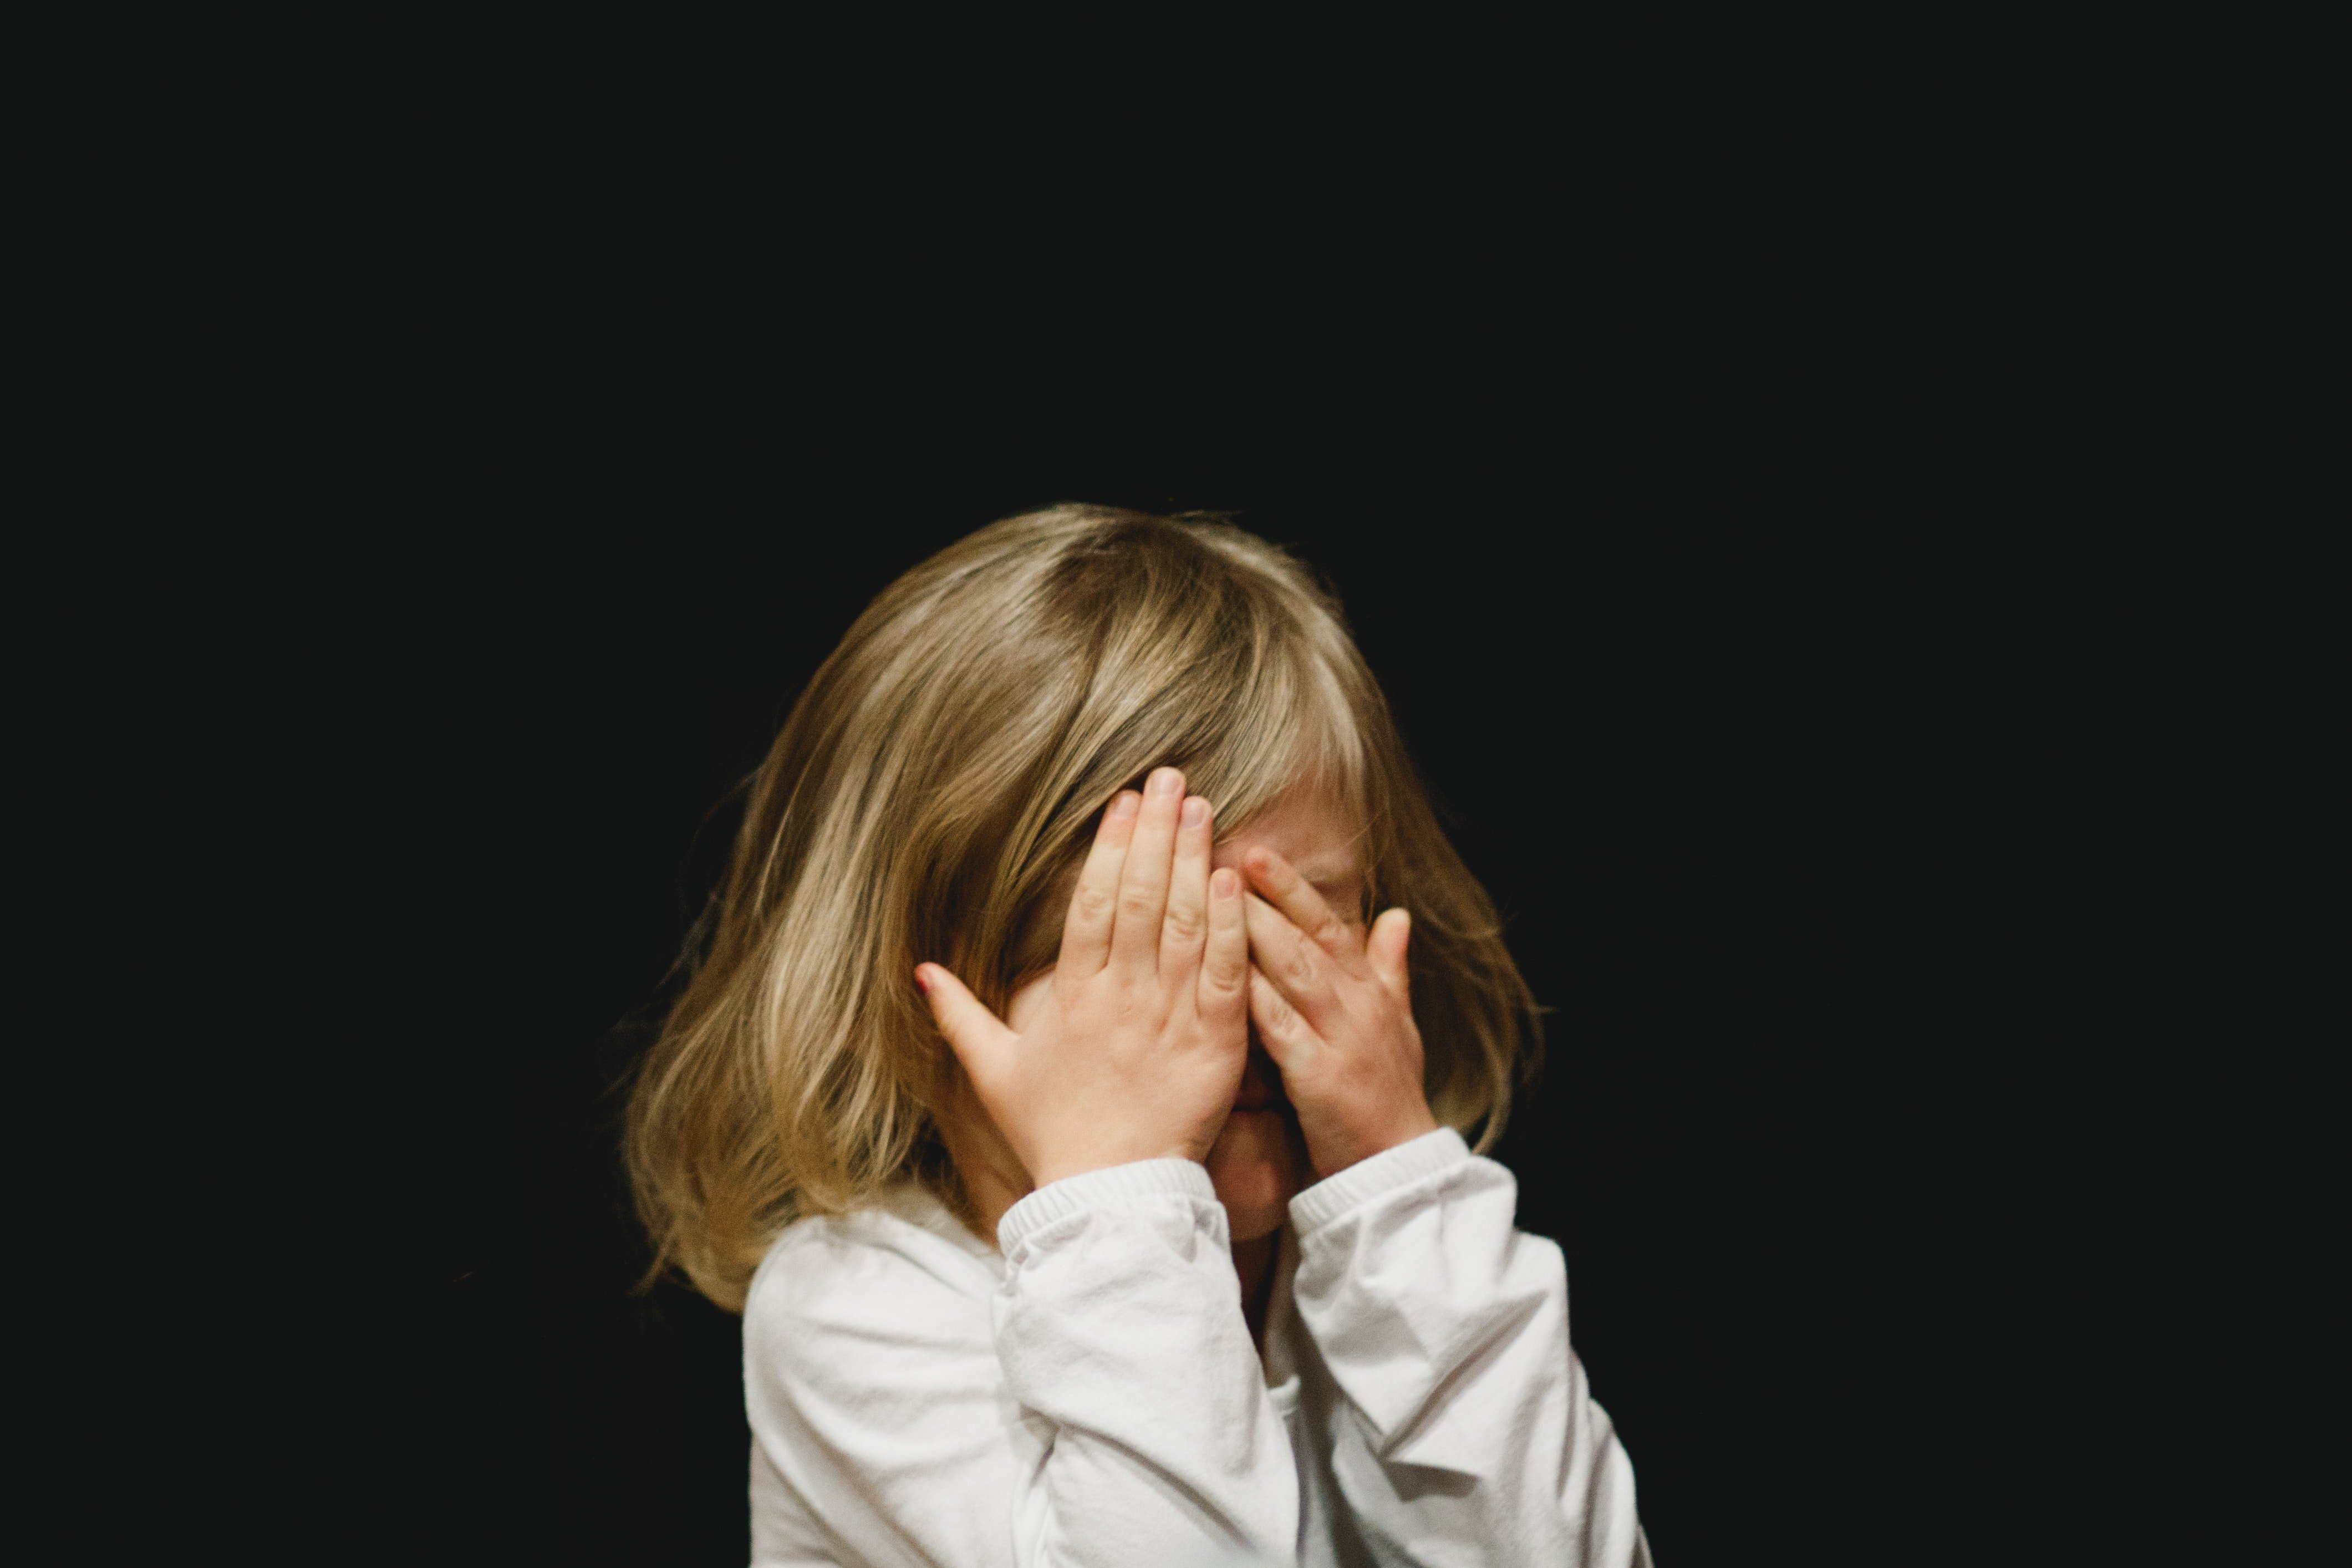 Evelyn burst into tears because nobody was ready to help her   Photo: Unsplash